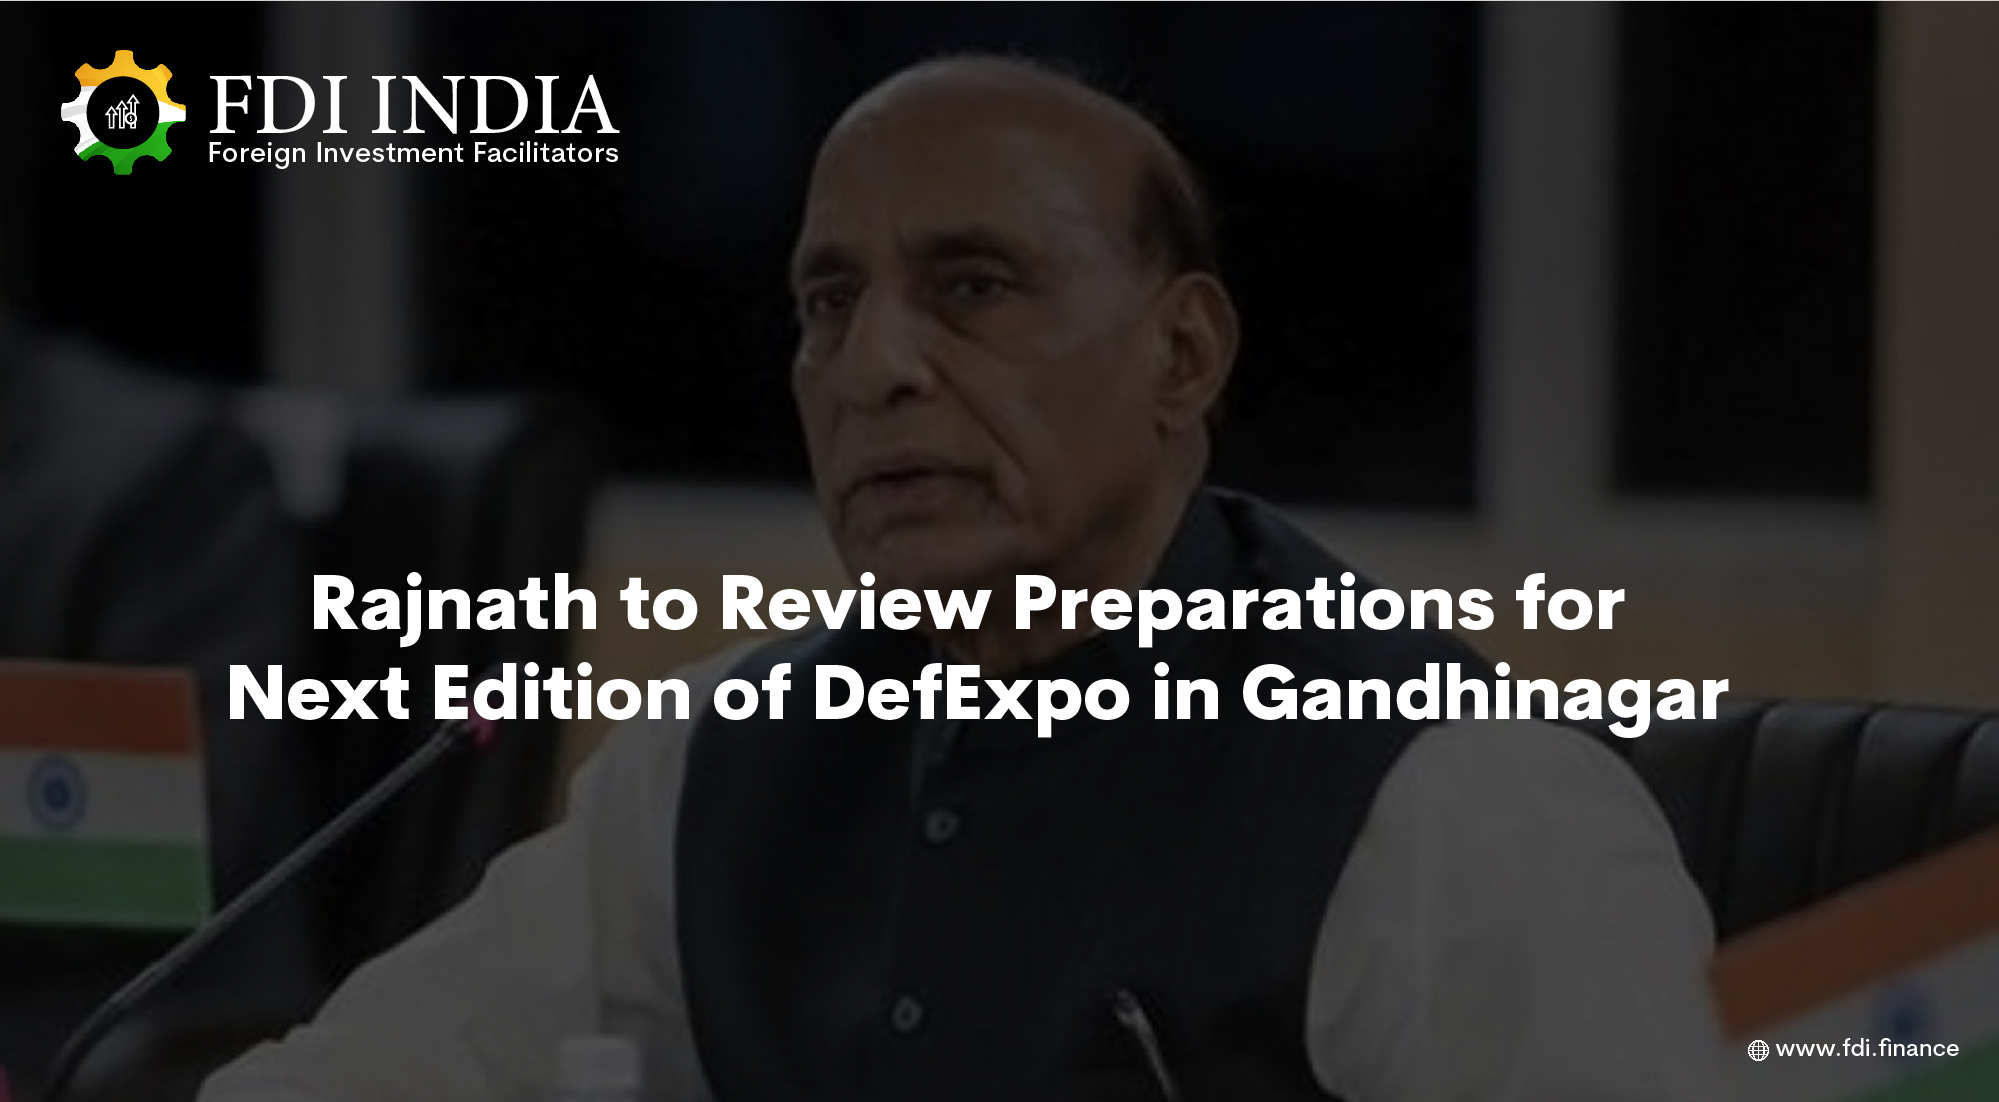 Rajnath to Review Preparations for Next Edition of DefExpo in Gandhinagar